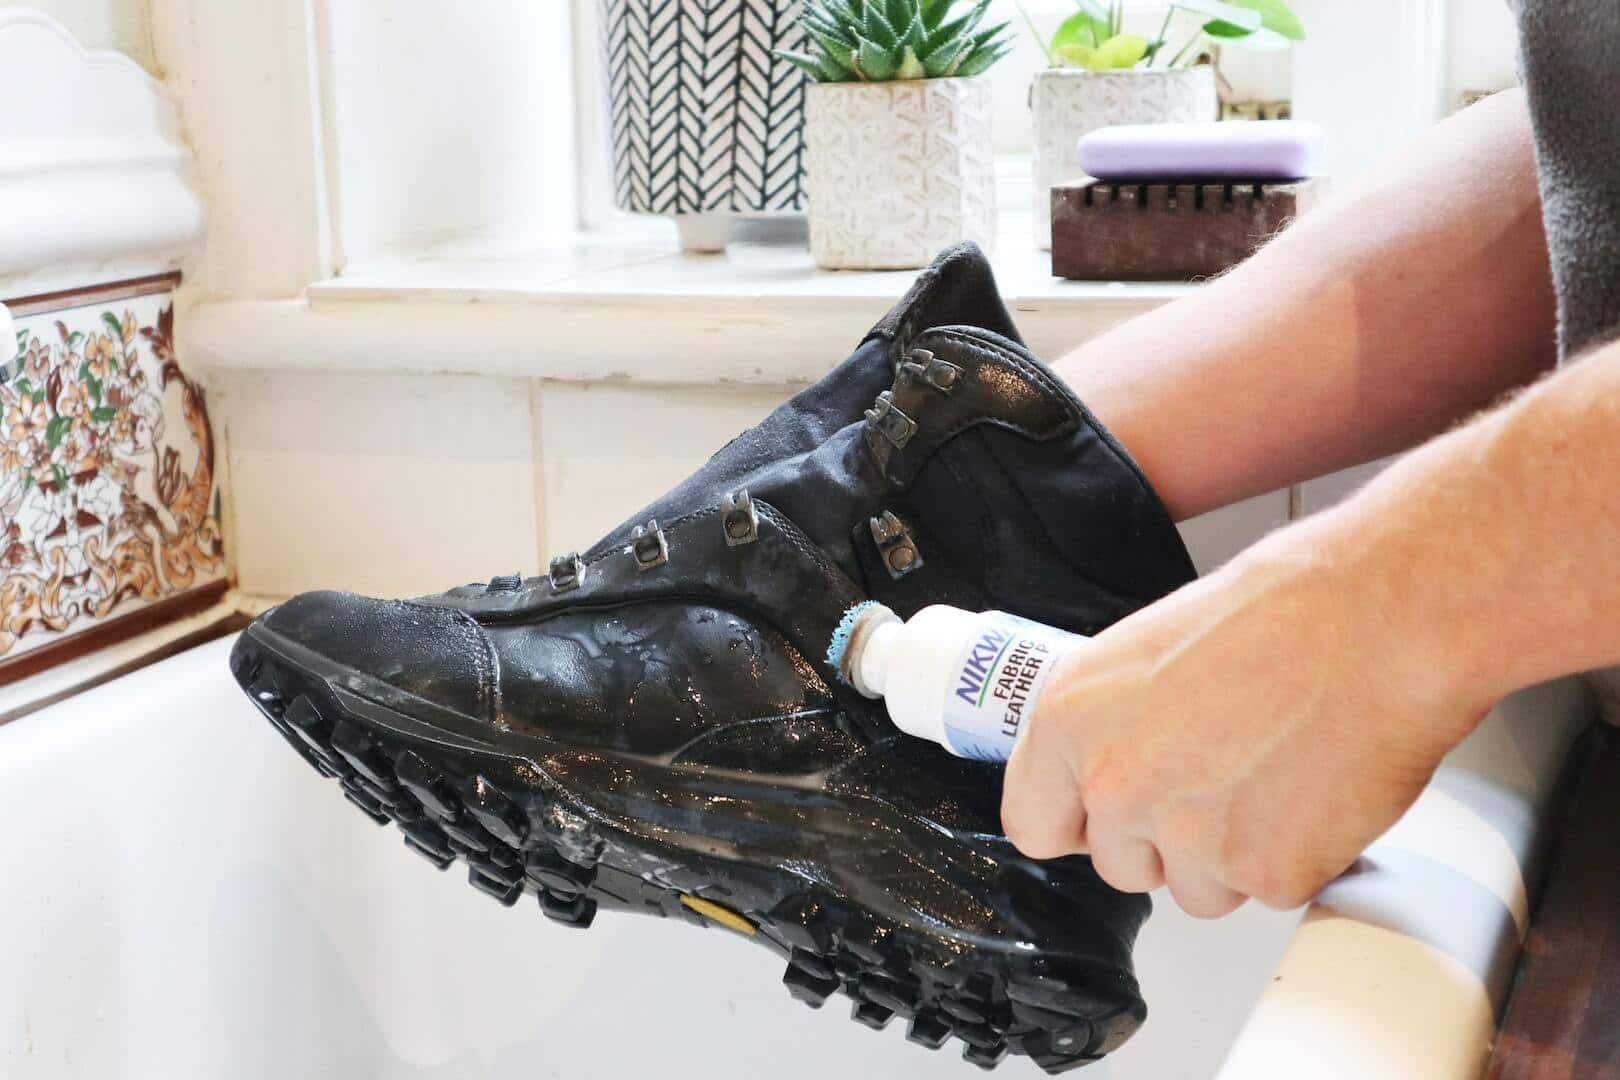 BOOTS CAN BE MACHINE DRIED